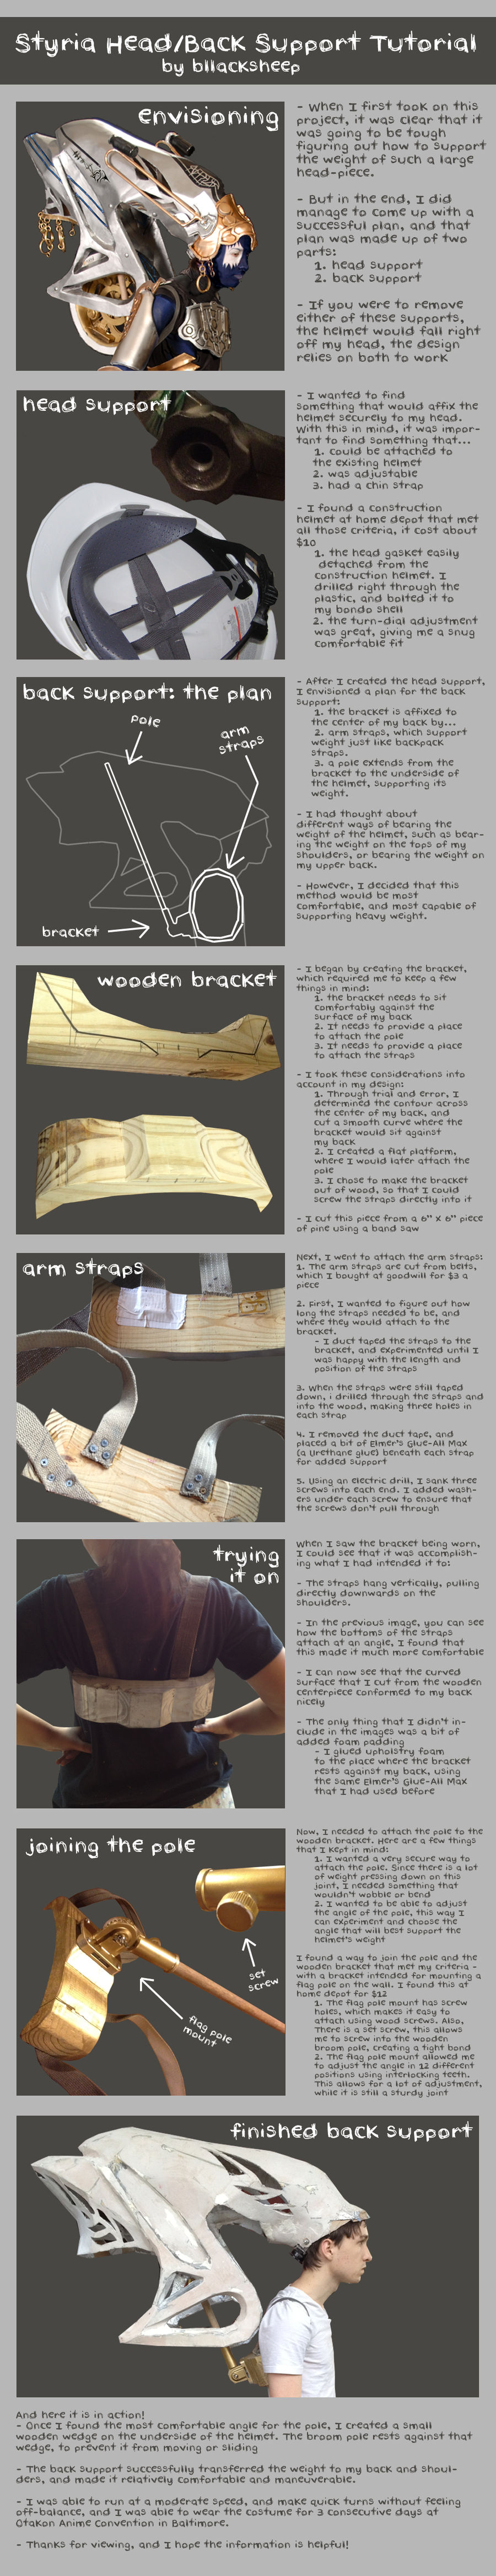 Shiva Sisters Styria Head/Back Support Tutorial